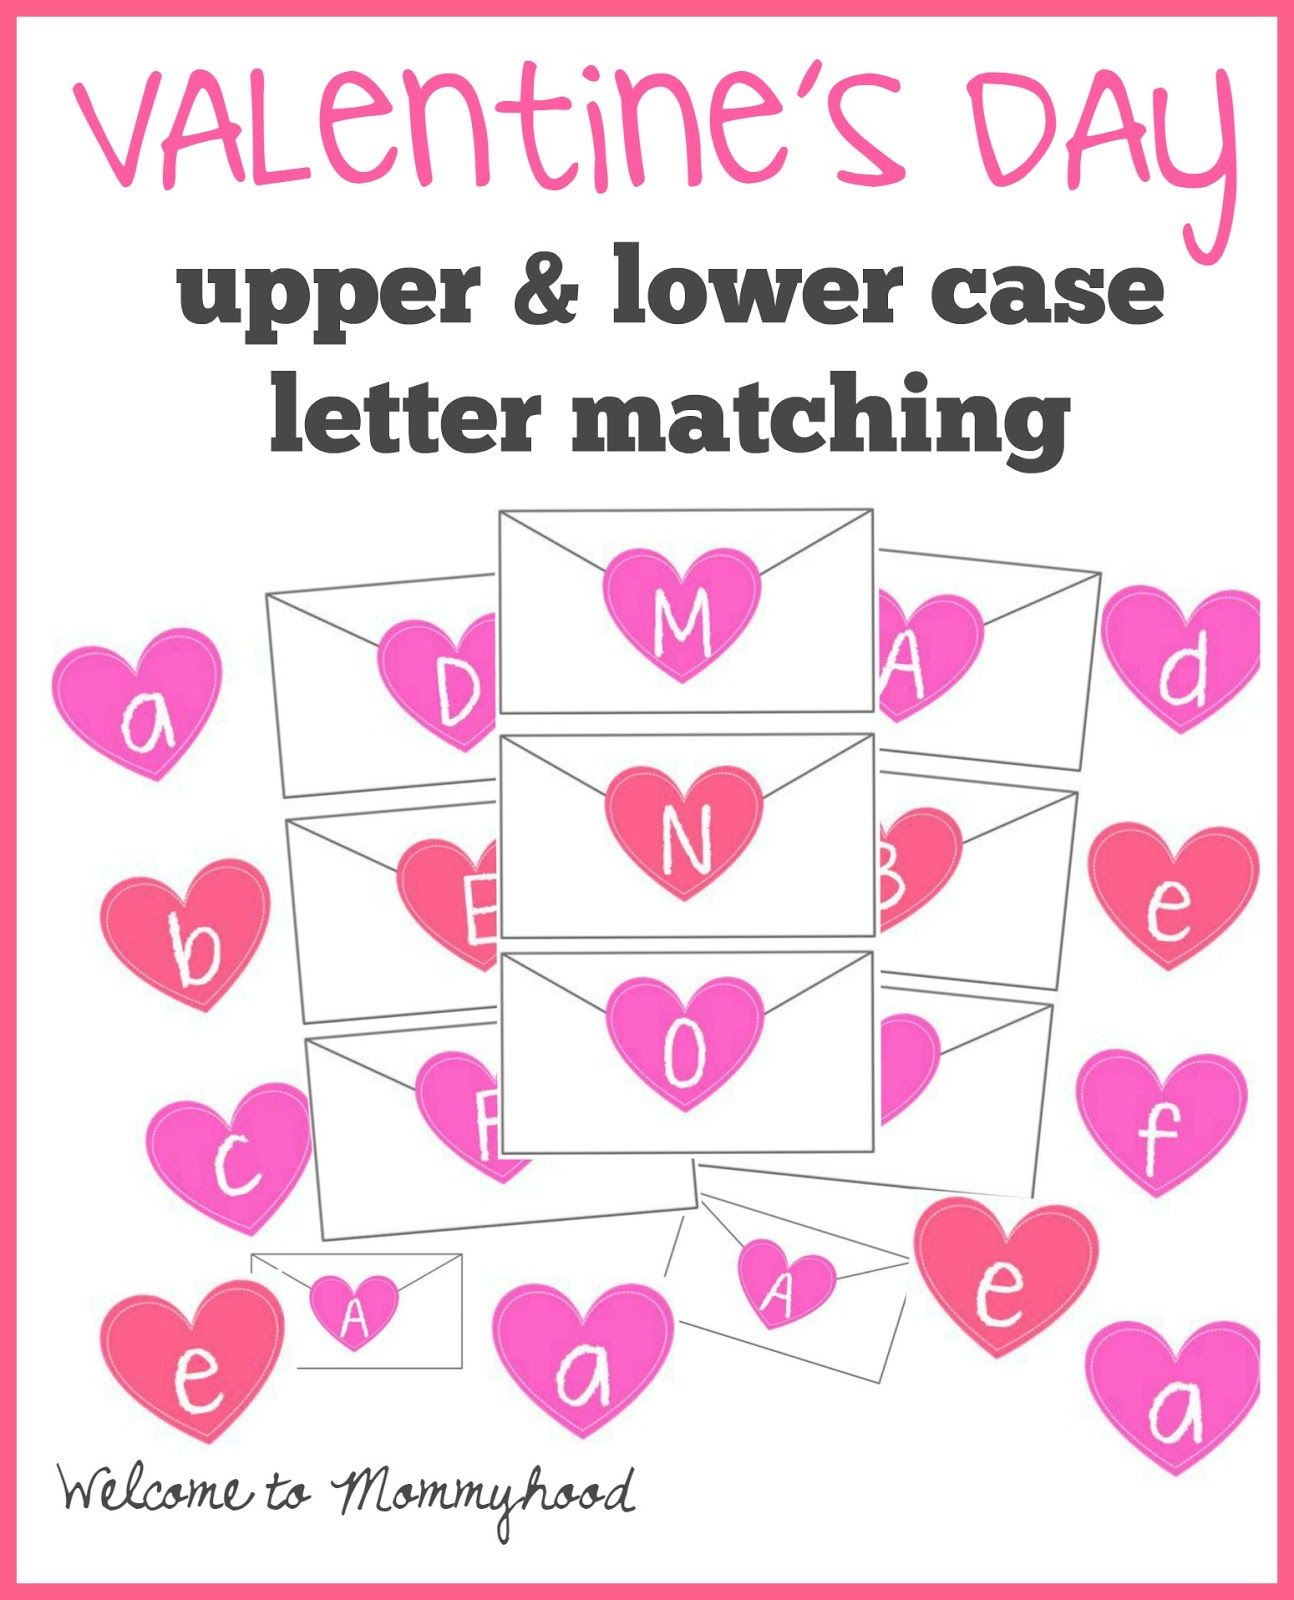 Free Valentines Day Printables Upper and lower case letter